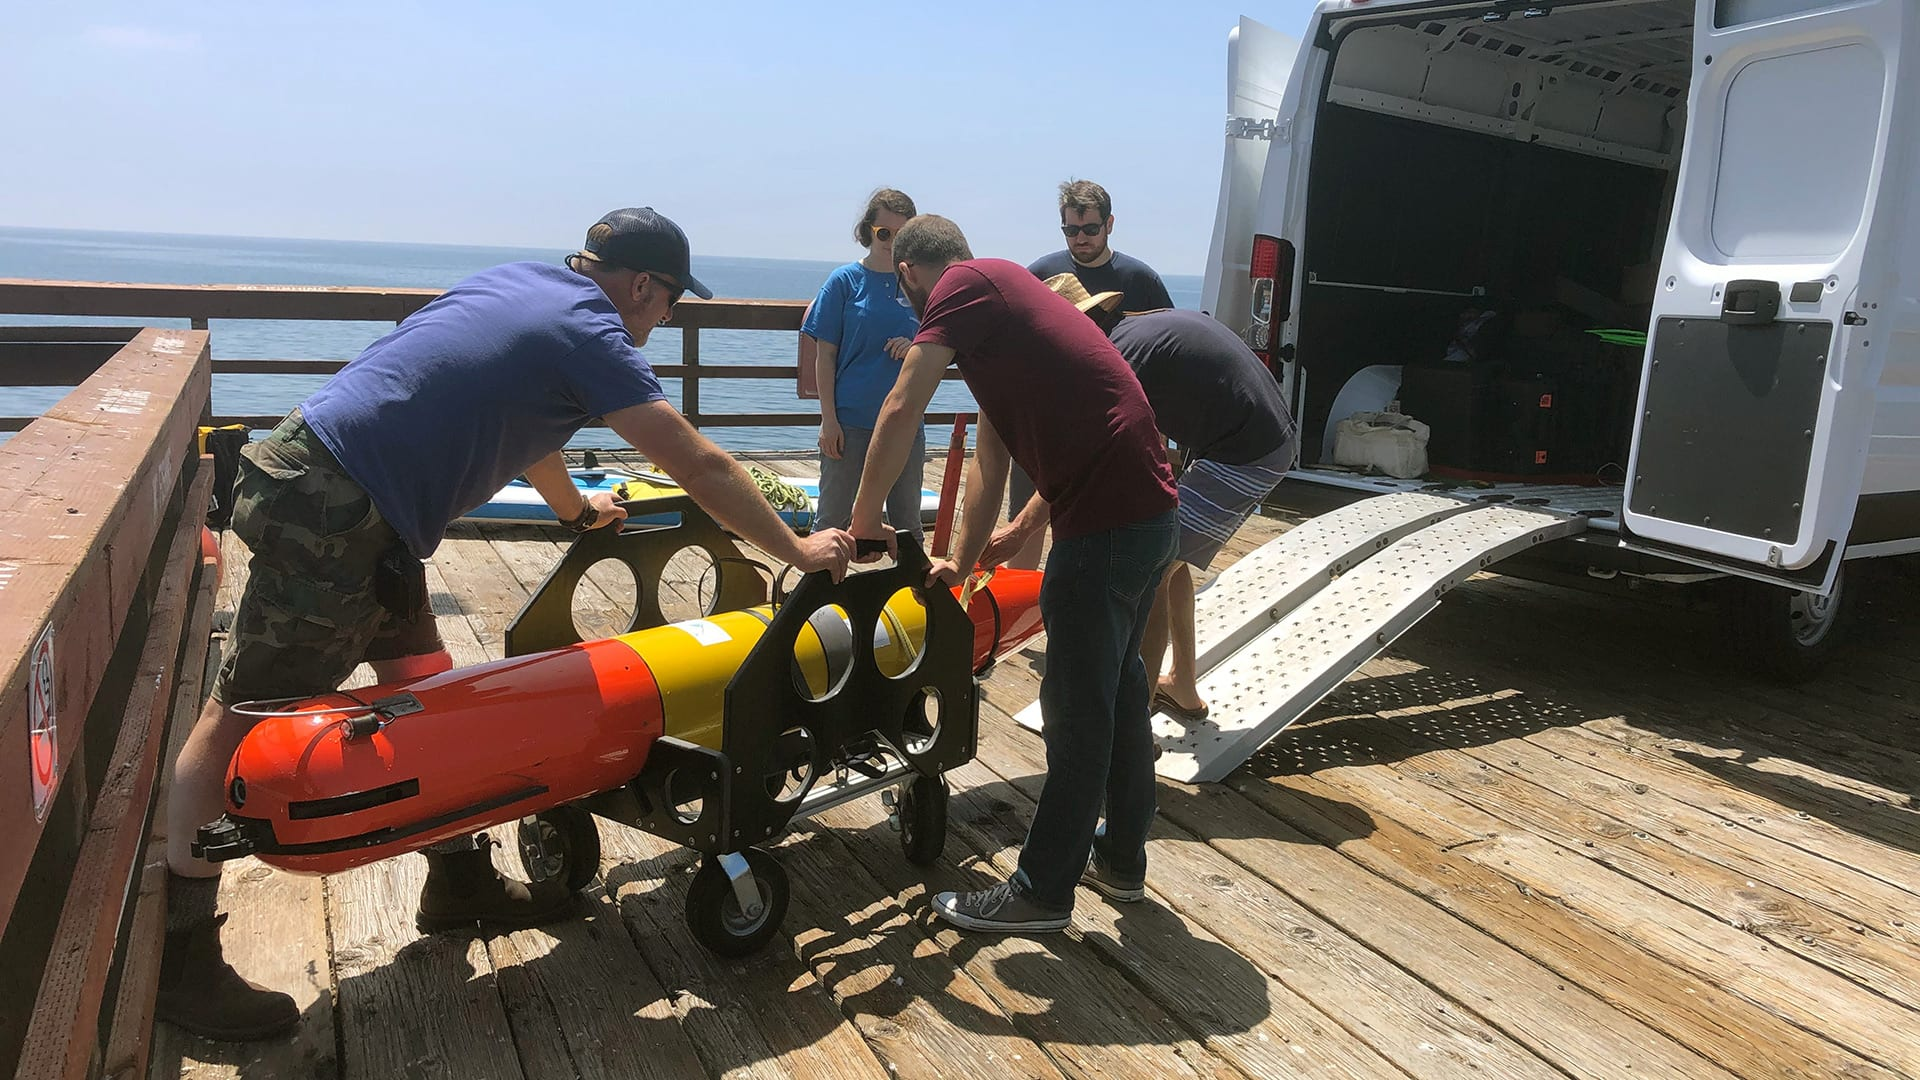 Researchers get the LRAUV ready to deploy for the simulated oil spill response drill. WHOI's strength in marine operations and logistics, combined with the vehicle's small form factor and easy-to-handle design, will enable quick mobilization in the event of an oil spill incident. (Photo by Amy Kukulya, Woods Hole Oceanographic Institution)